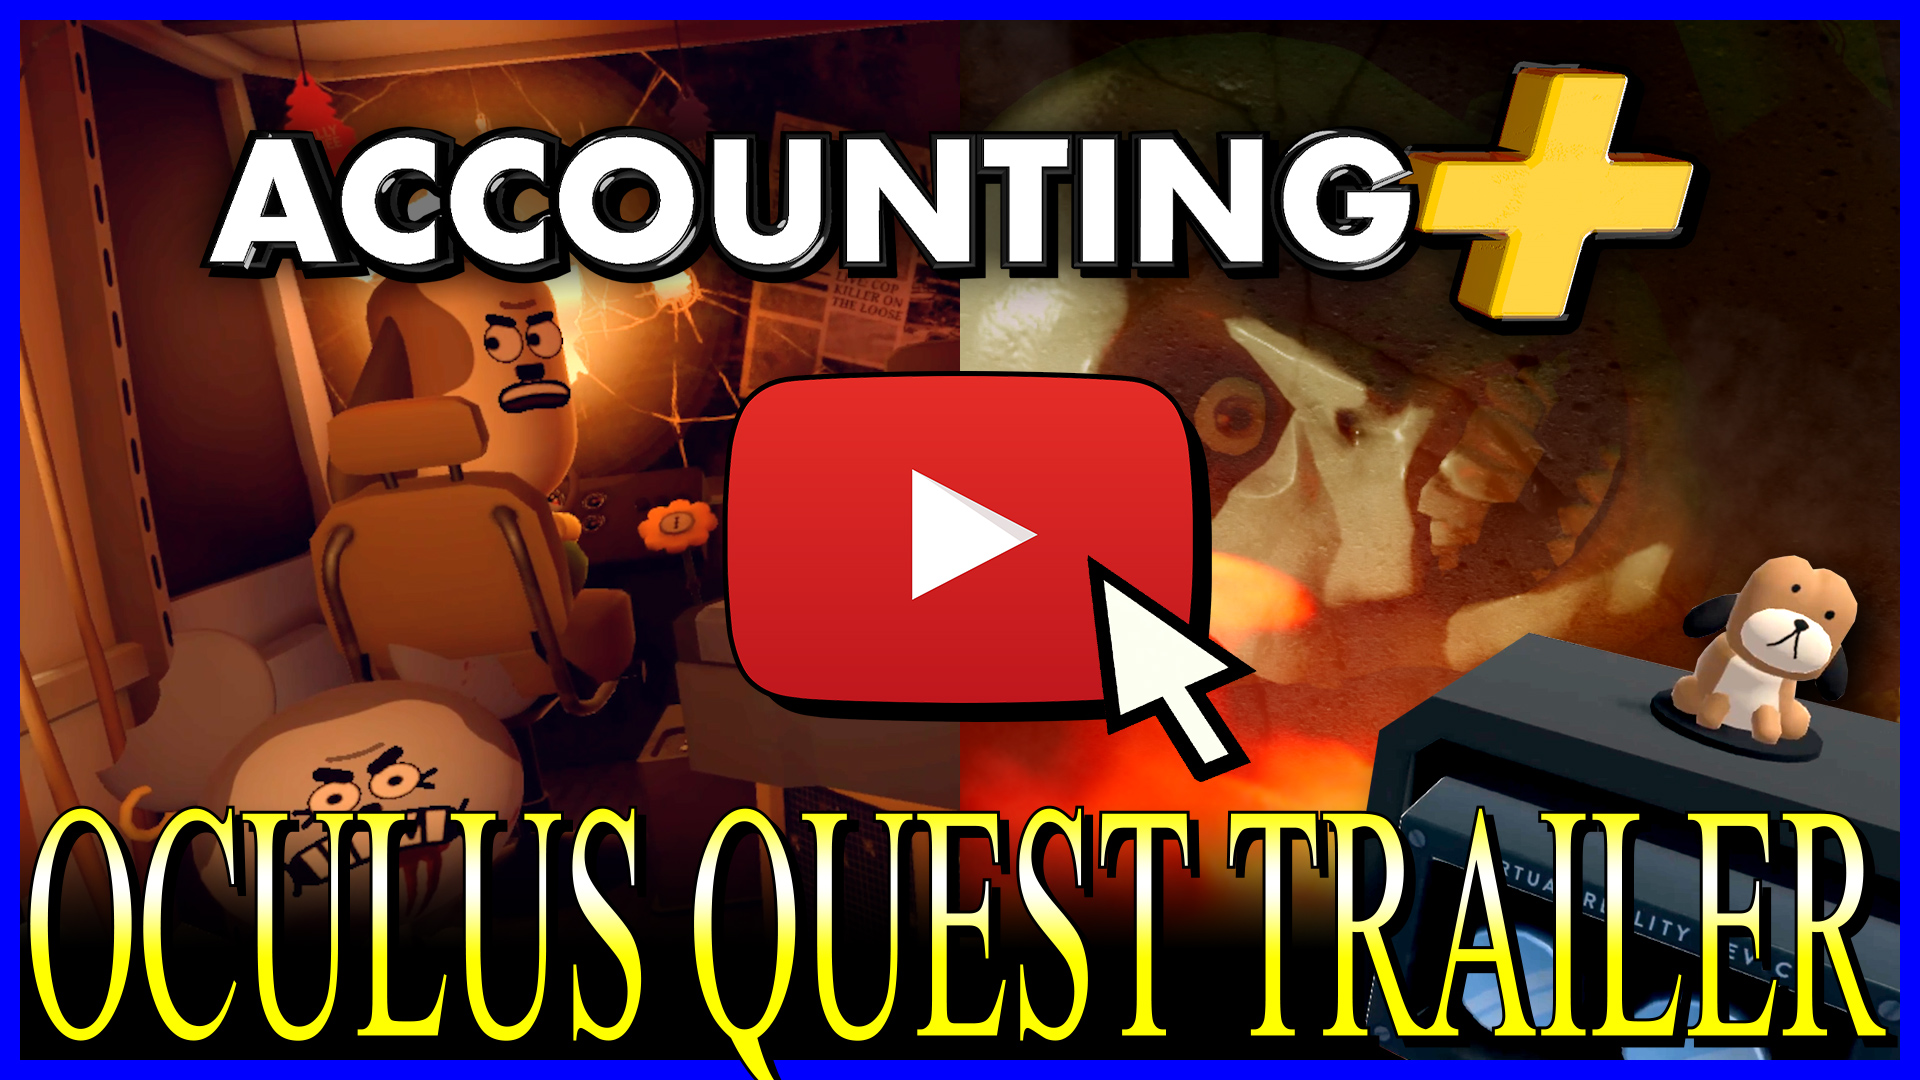 Watch the Accounting+ Quest Trailer